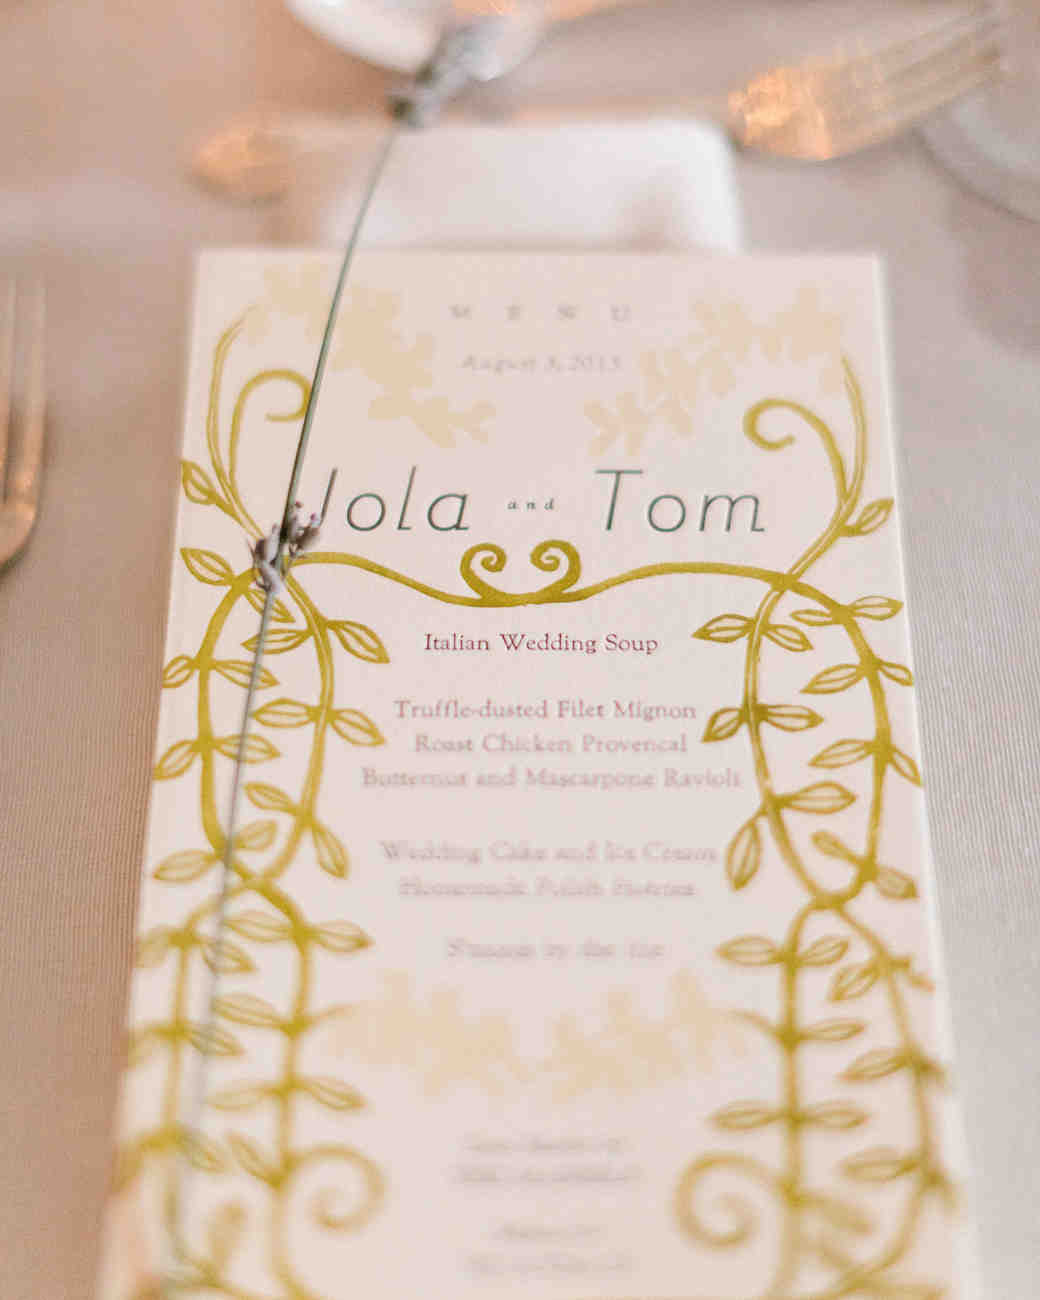 jola-tom-wedding-menu-0614.jpg